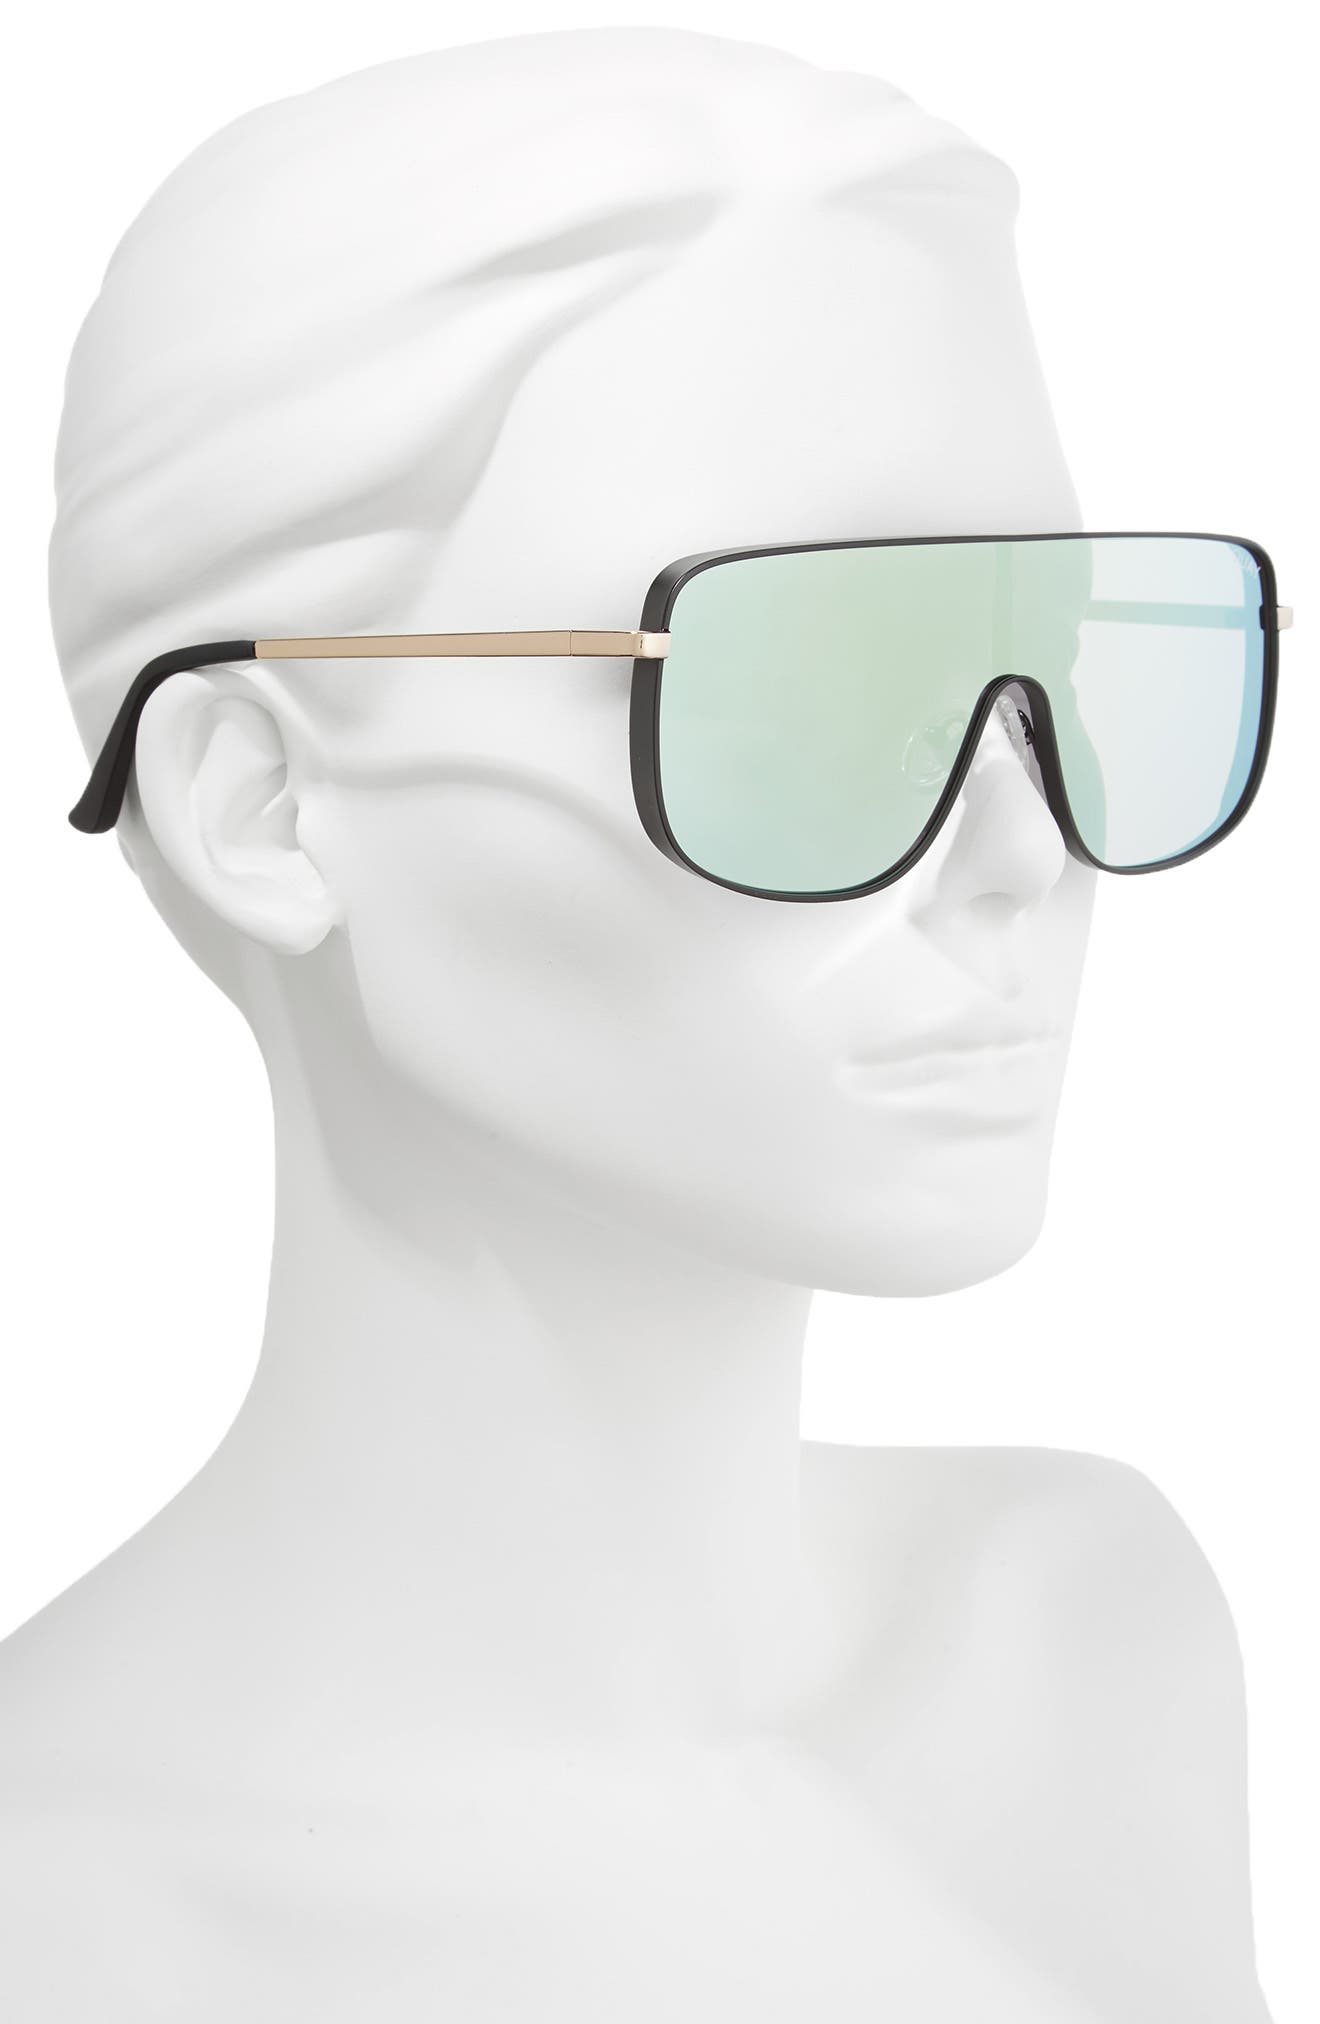 Unbothered 68mm Shield Sunglasses,                             Alternate thumbnail 2, color,                             001